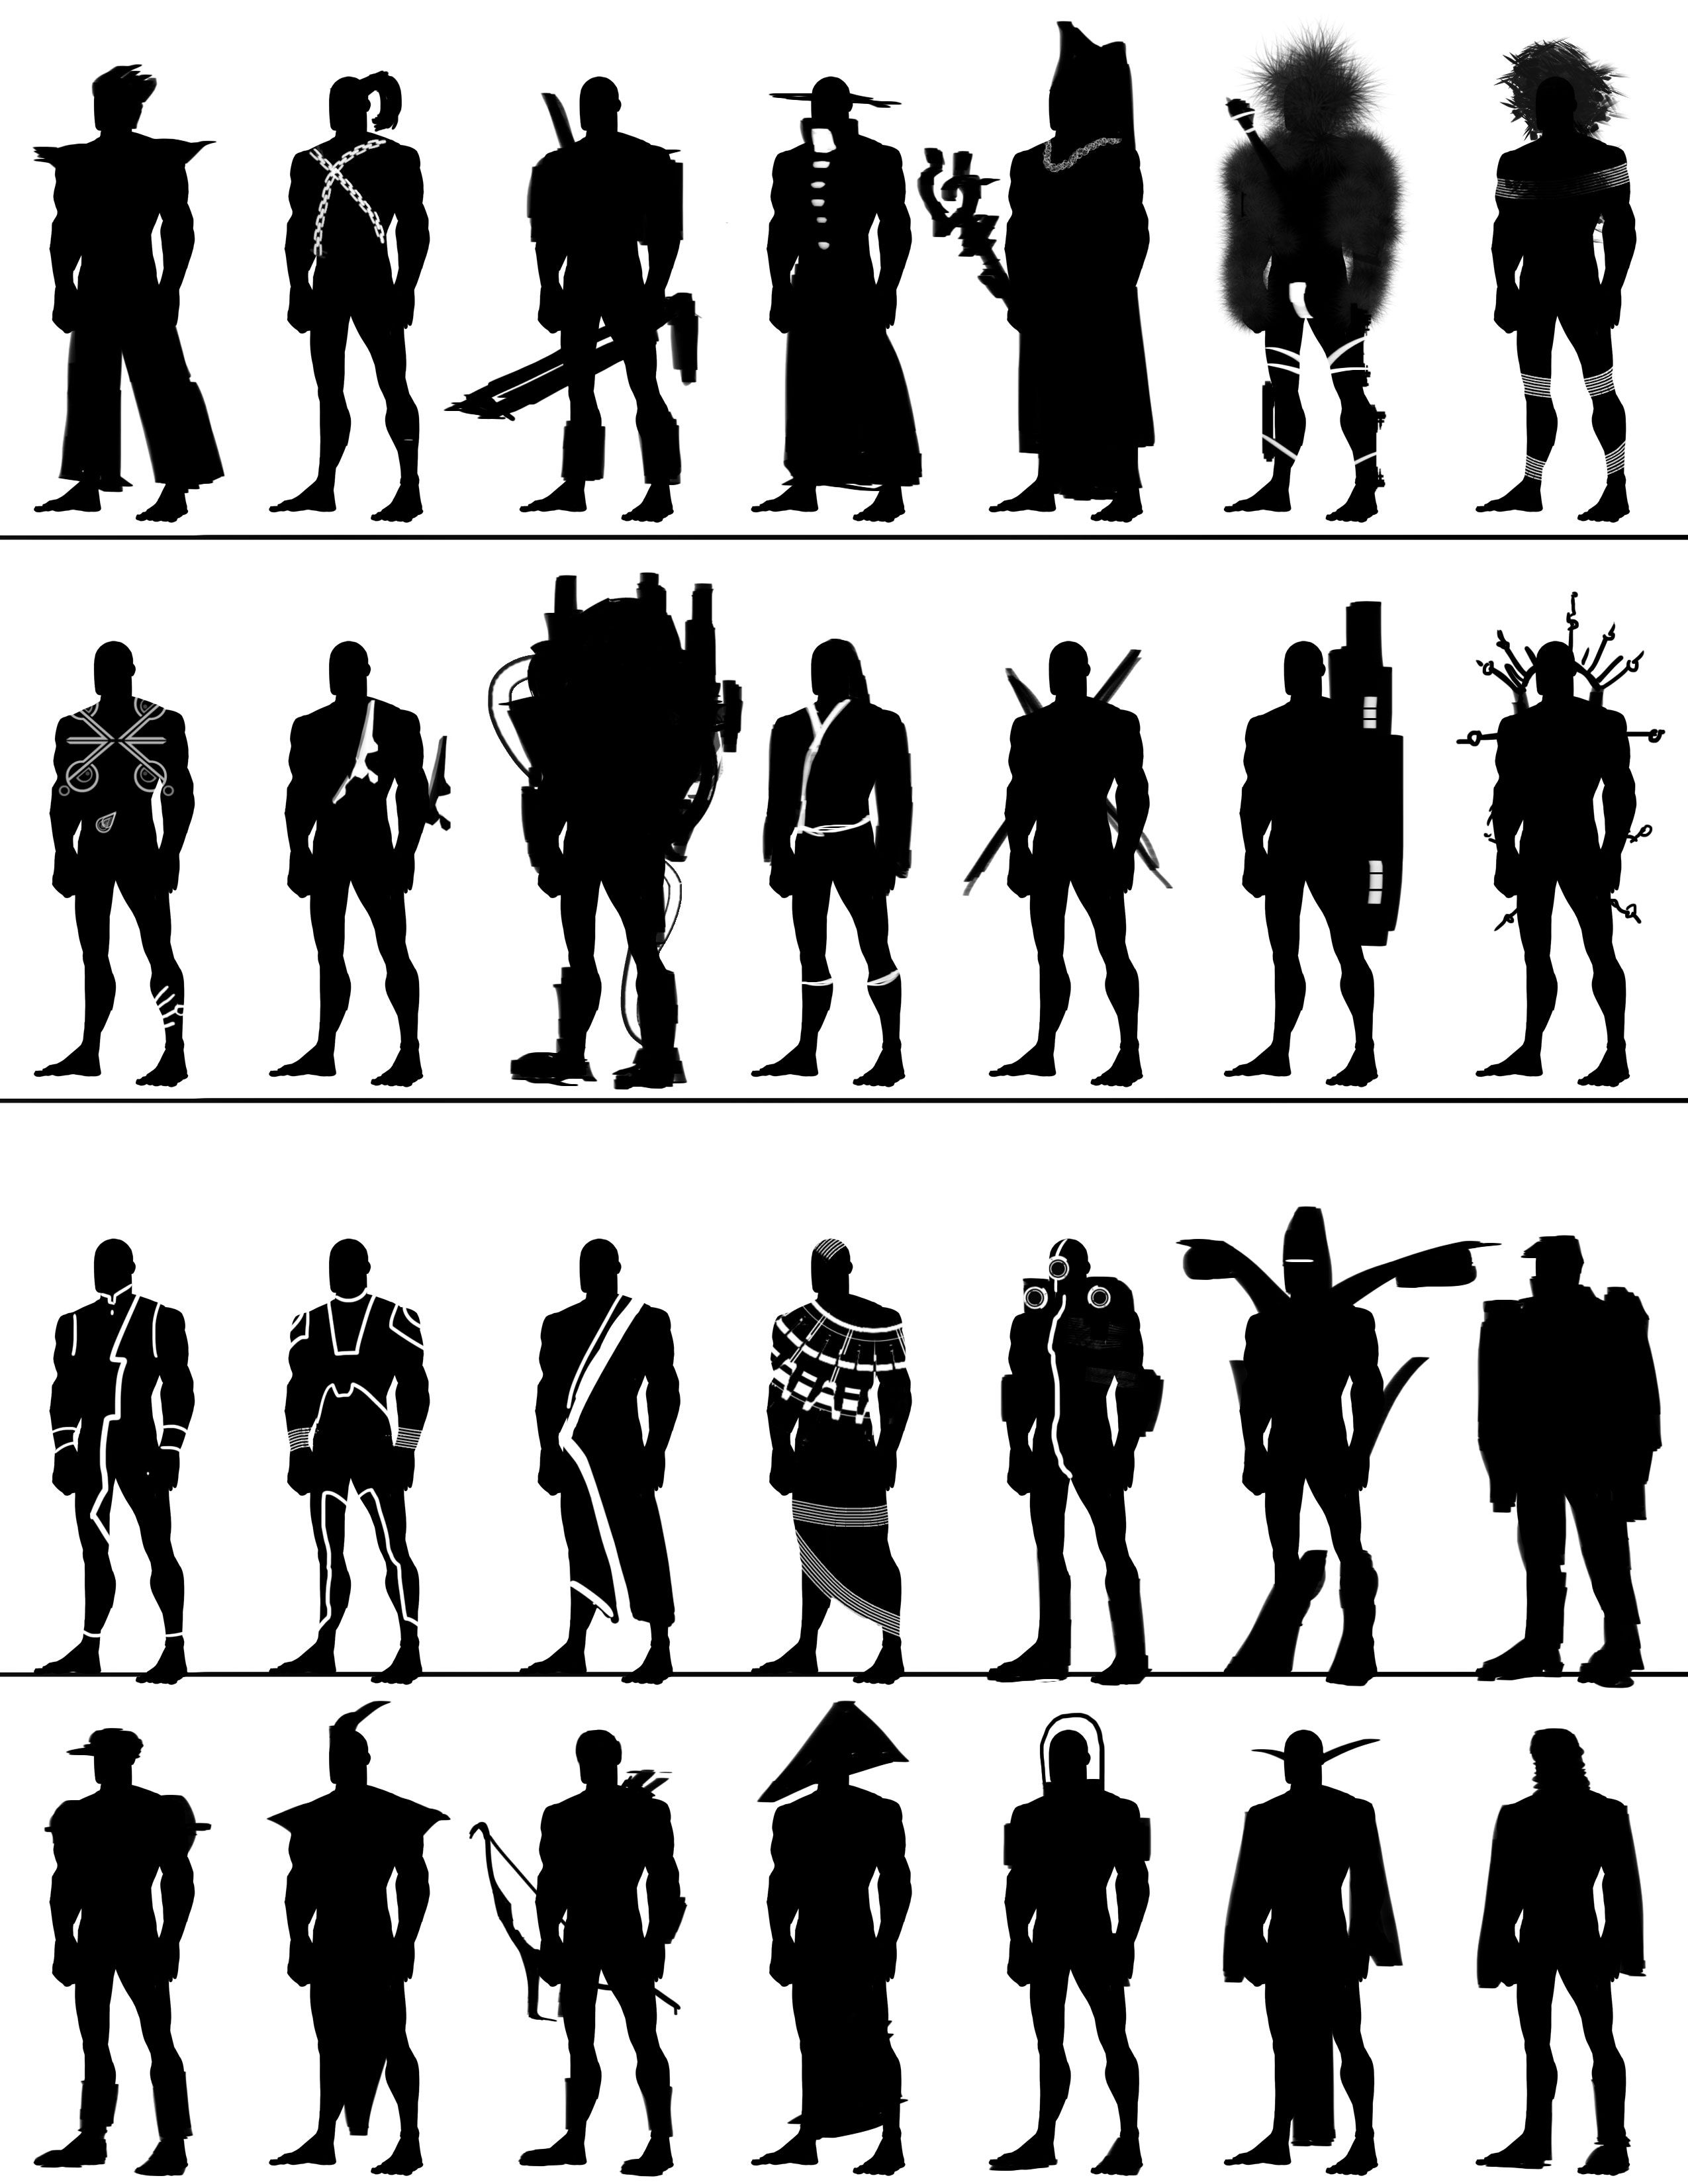 http://absolutelyabe.com/wp-content/uploads/2013/05/HW_CharacterSilhouette5.jpg  ★ || CHARACTER DESIGN REFERENCES™ (https://www.facebook.com/CharacterDesignReferences & https://www.pinterest.com/characterdesigh) • Love Character Design? Join the #CDChallenge (link→ https://www.facebook.com/groups/CharacterDesignChallenge) Share your unique vision of a theme, promote your art in a community of over 50.000 artists! || ★